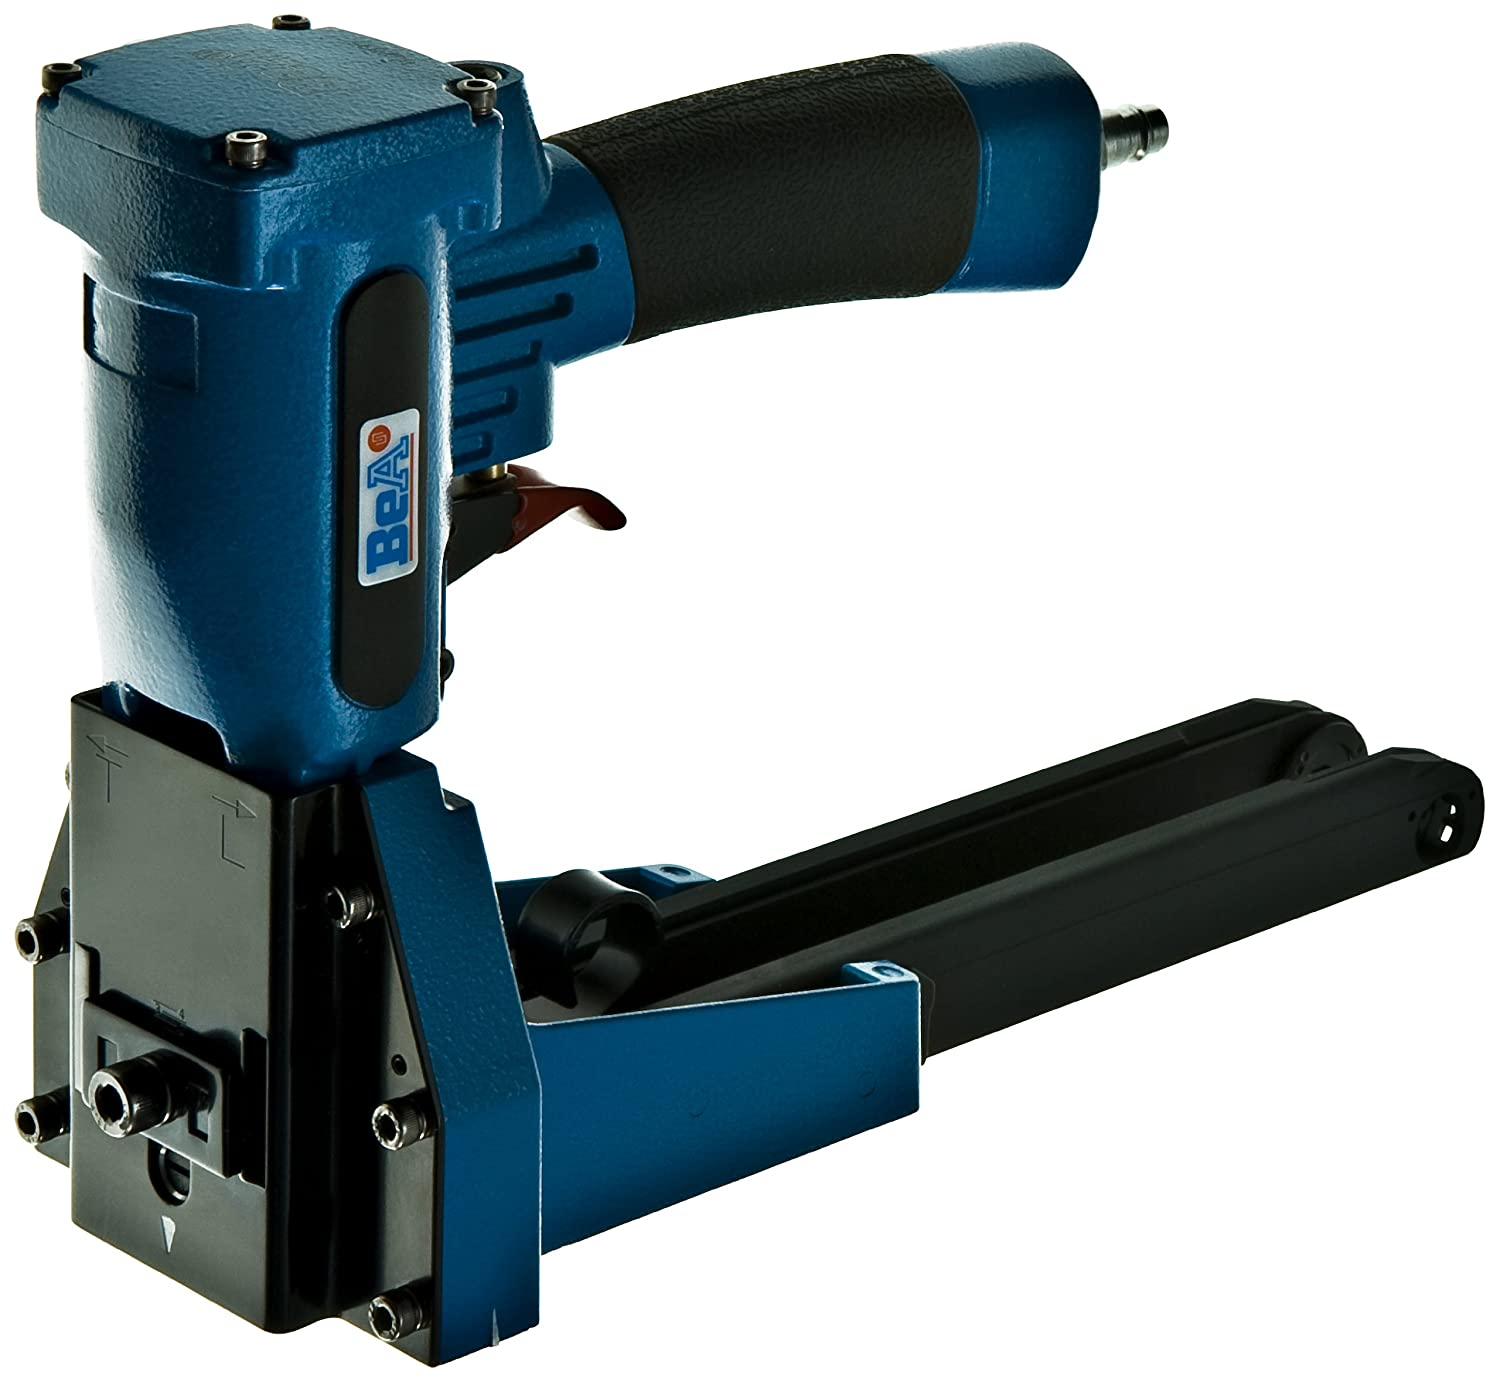 Apach LU-9225AC 18 Gauge Stapler for 92 Series Staples 5//16-Inch to 1-Inch